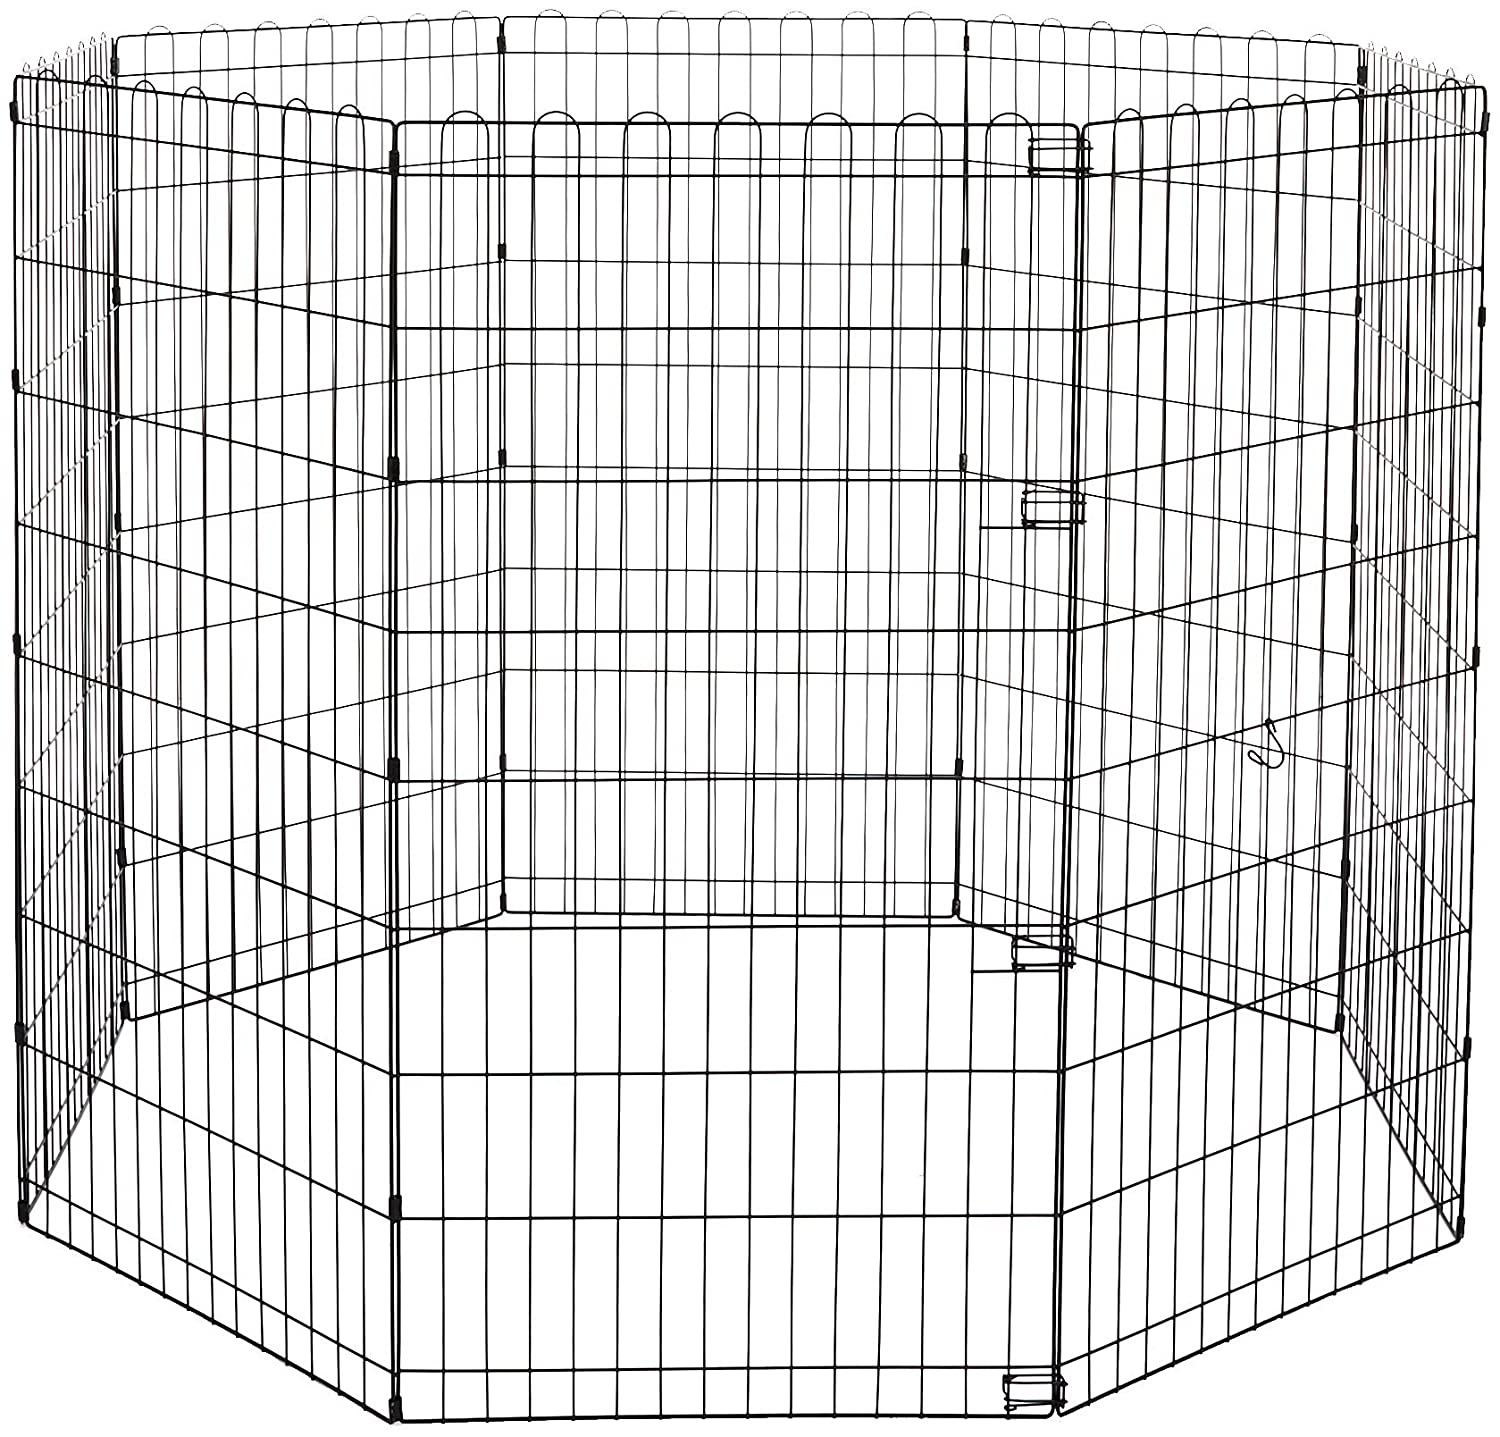 AmazonBasics Foldable Metal Pet Exercise and Playpen 48-Inch